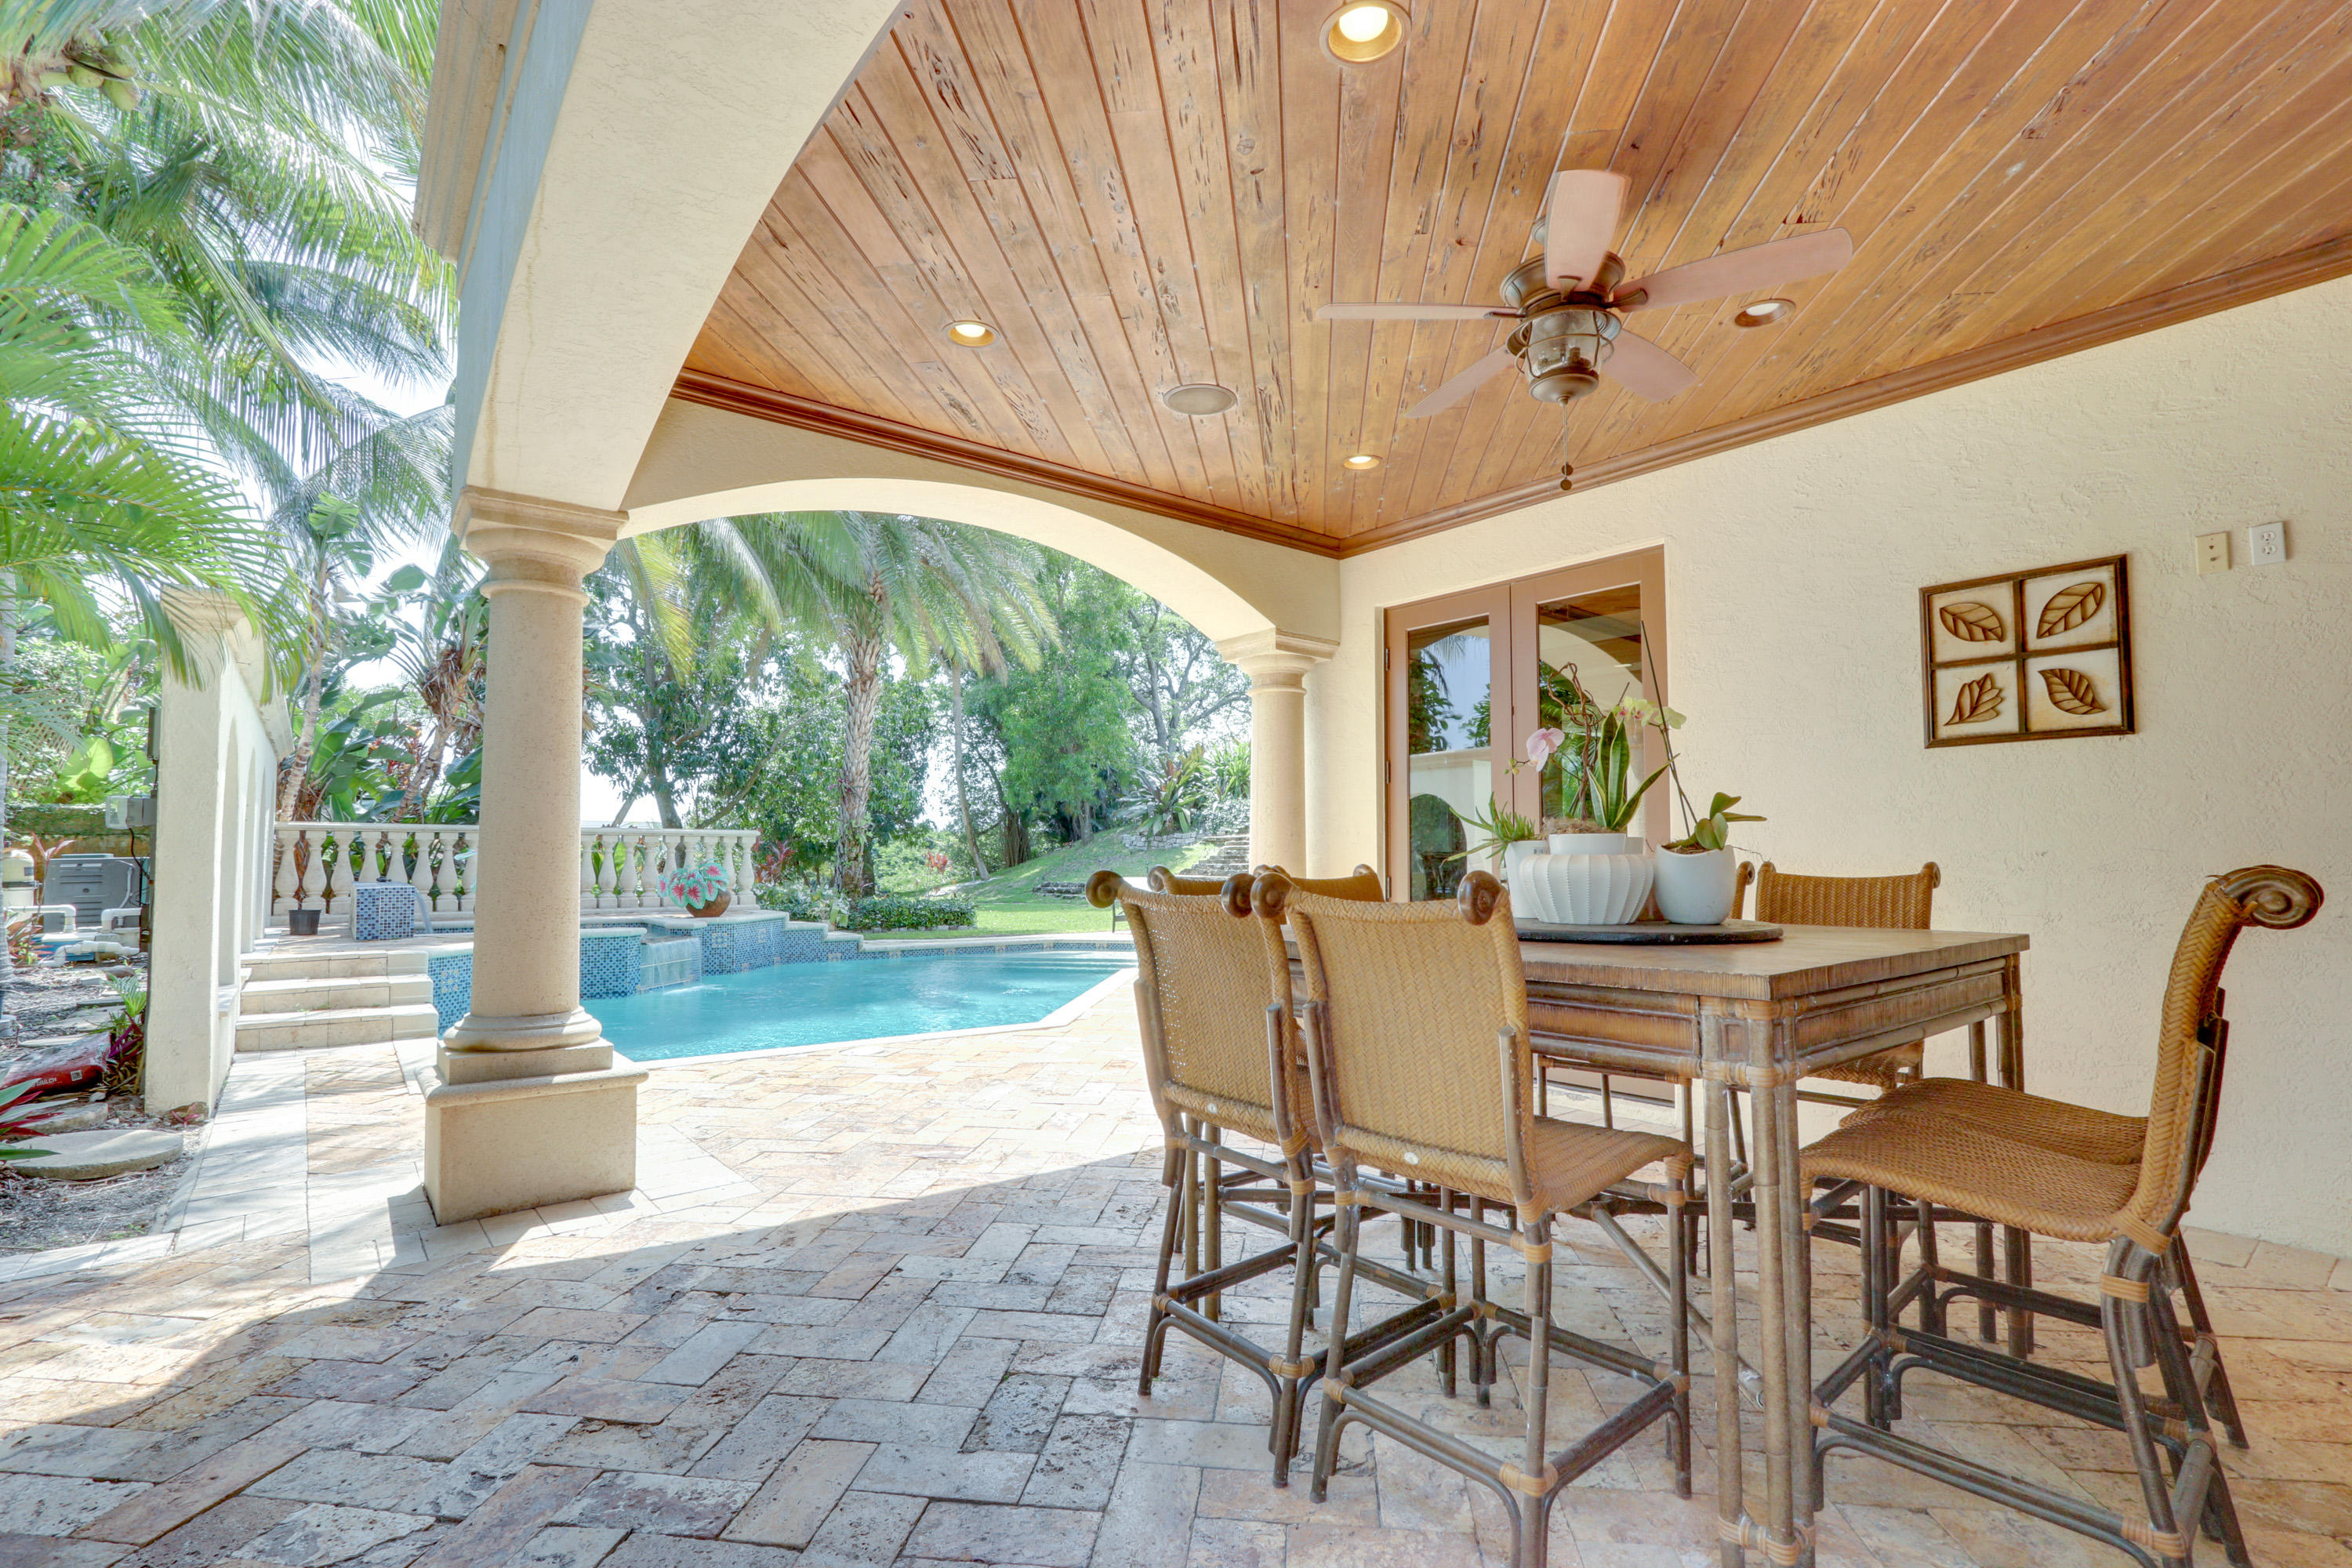 Covered  Patio Breakfast Area